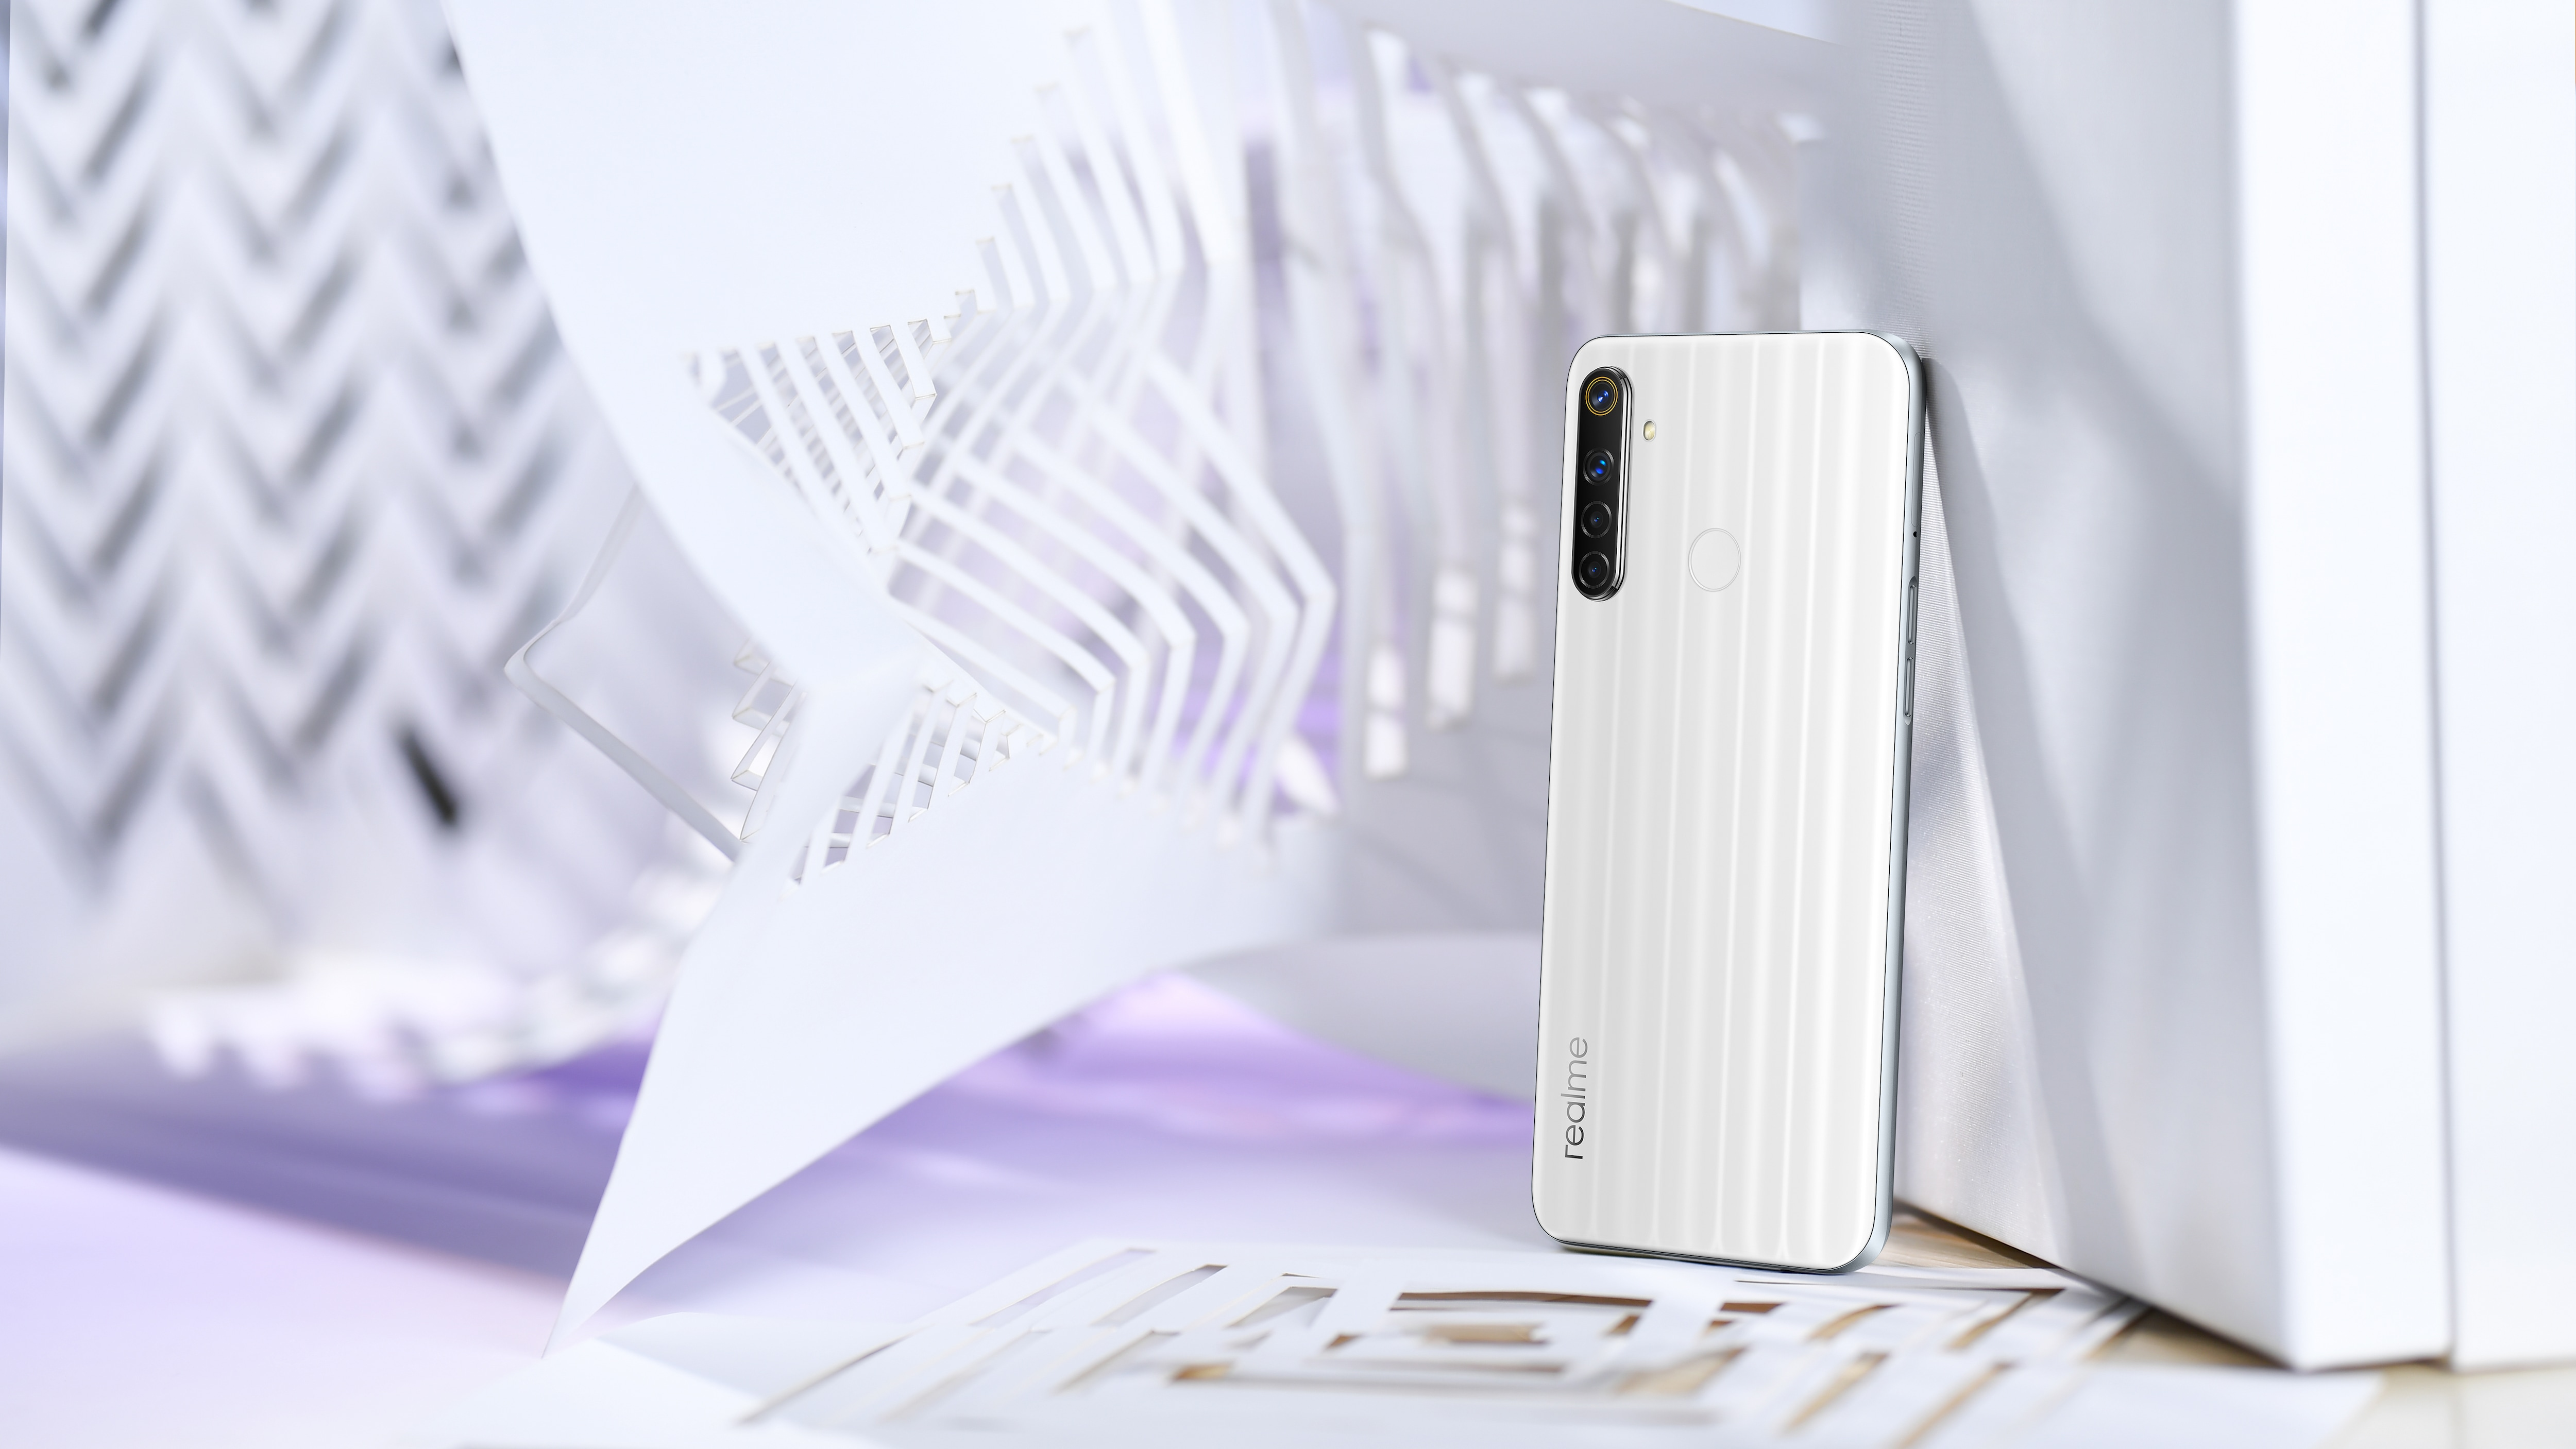 The Realme Narzo 10 is powered by the MediaTek Helio G80 octa-core processor that is coupled with 4GB of RAM and 128GB of storage space. It runs on Android 10 based Realme UI.